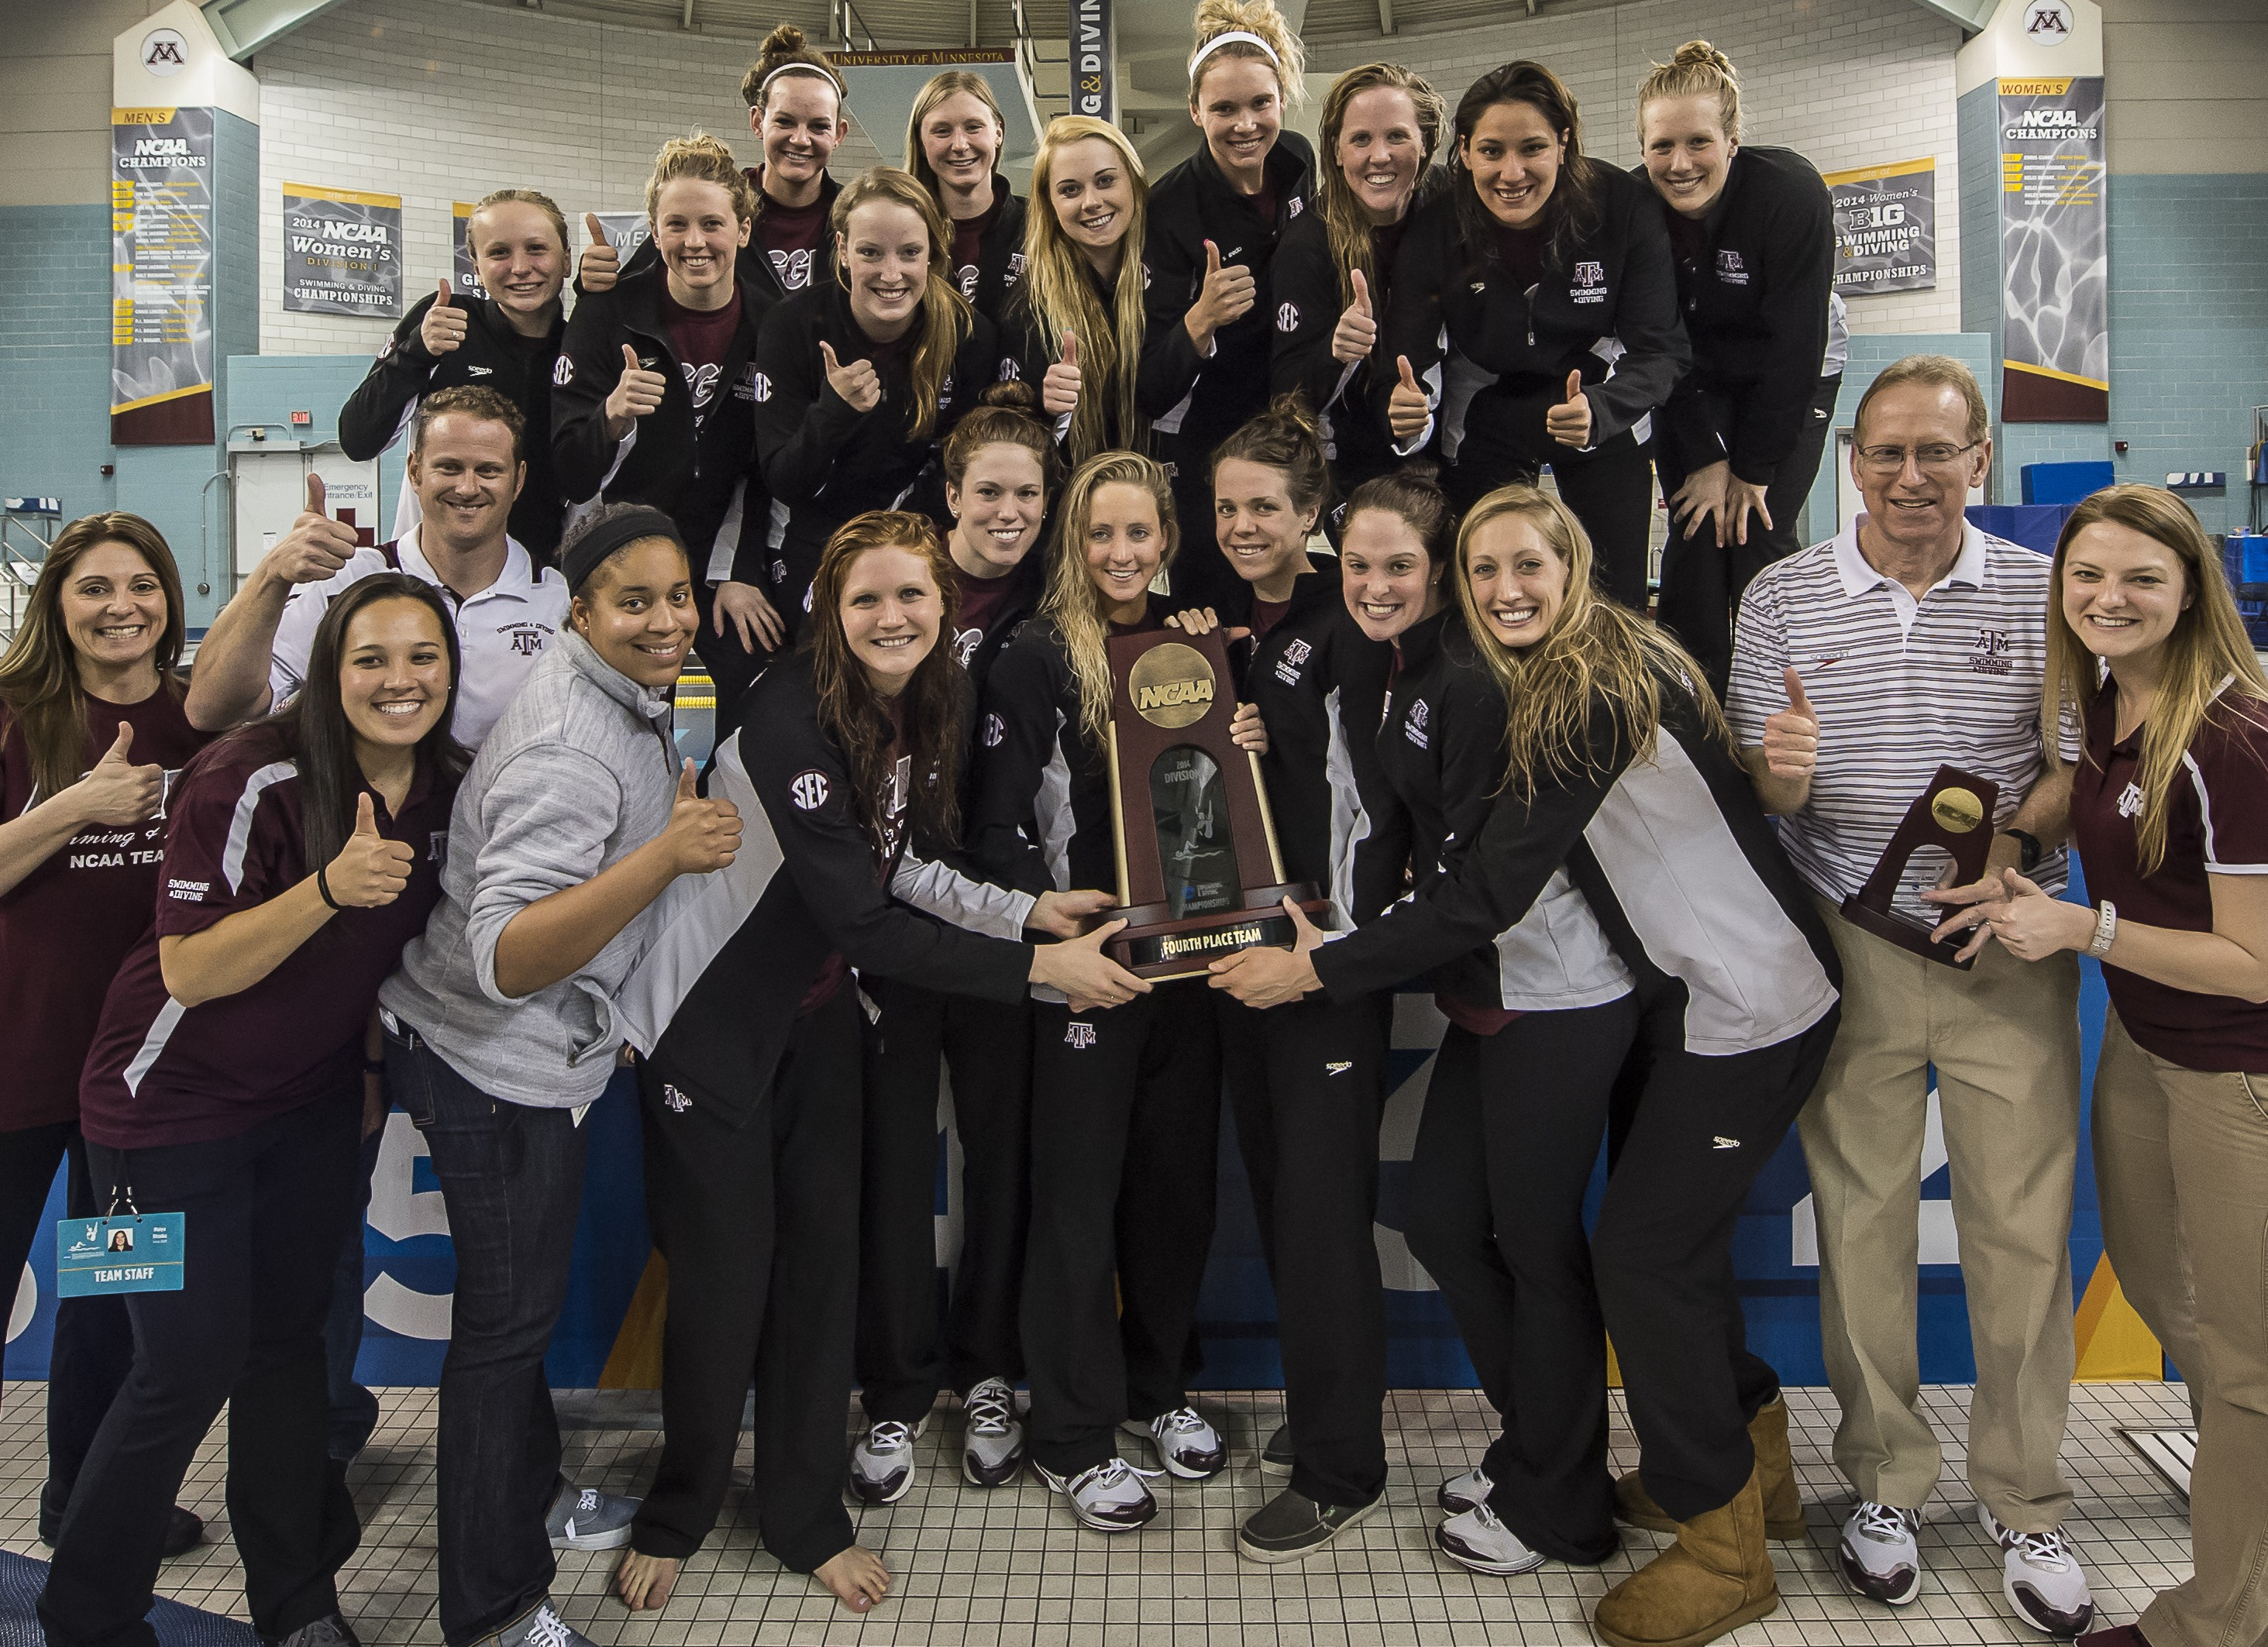 Texas A M Wncaa 2014 3713 Swimming World News